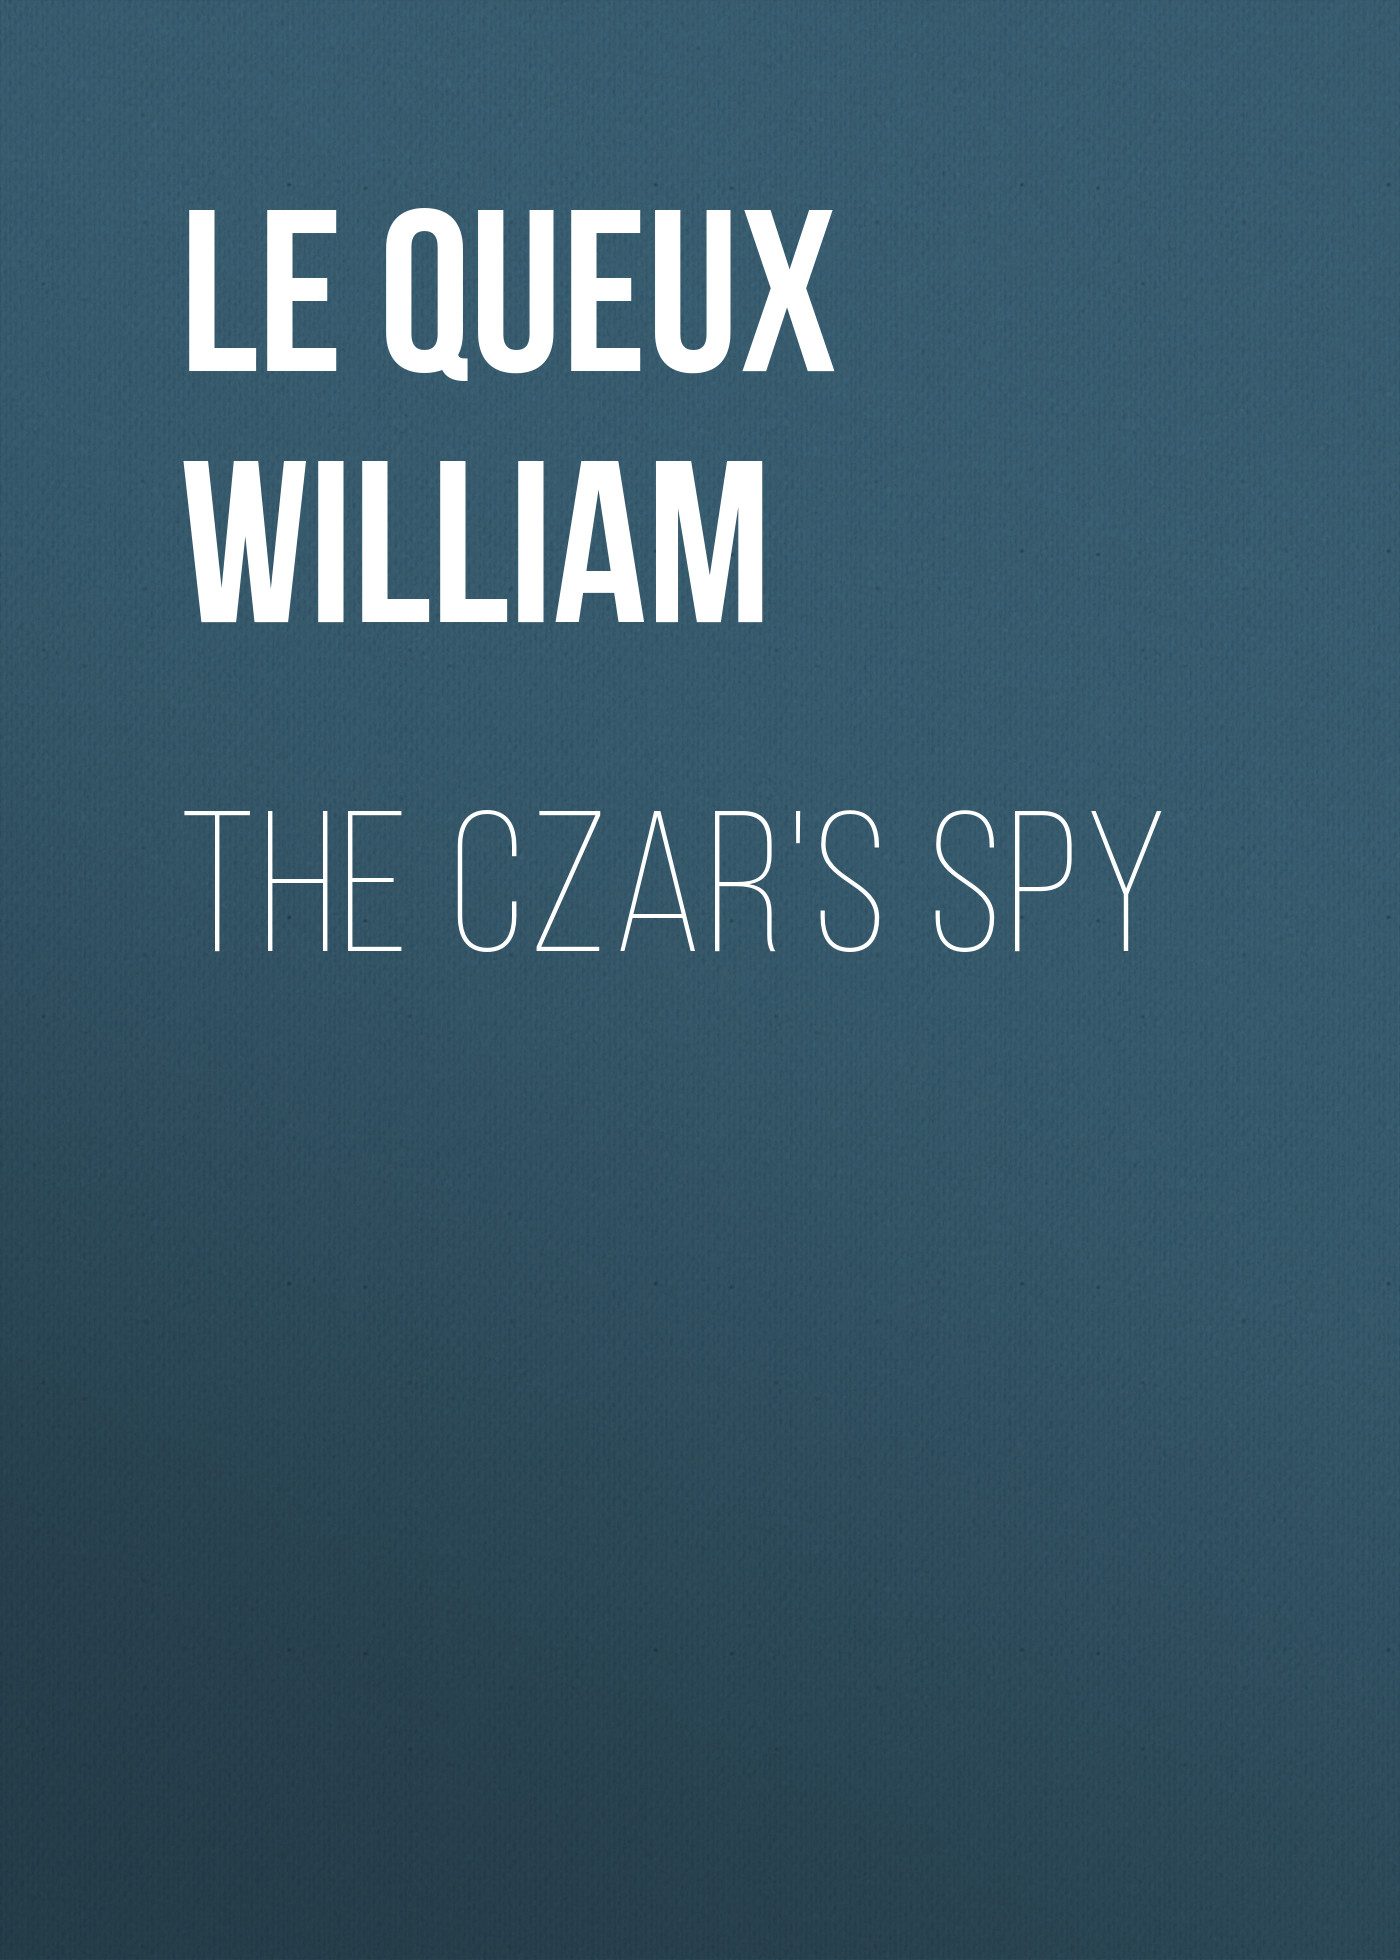 Le Queux William The Czar's Spy